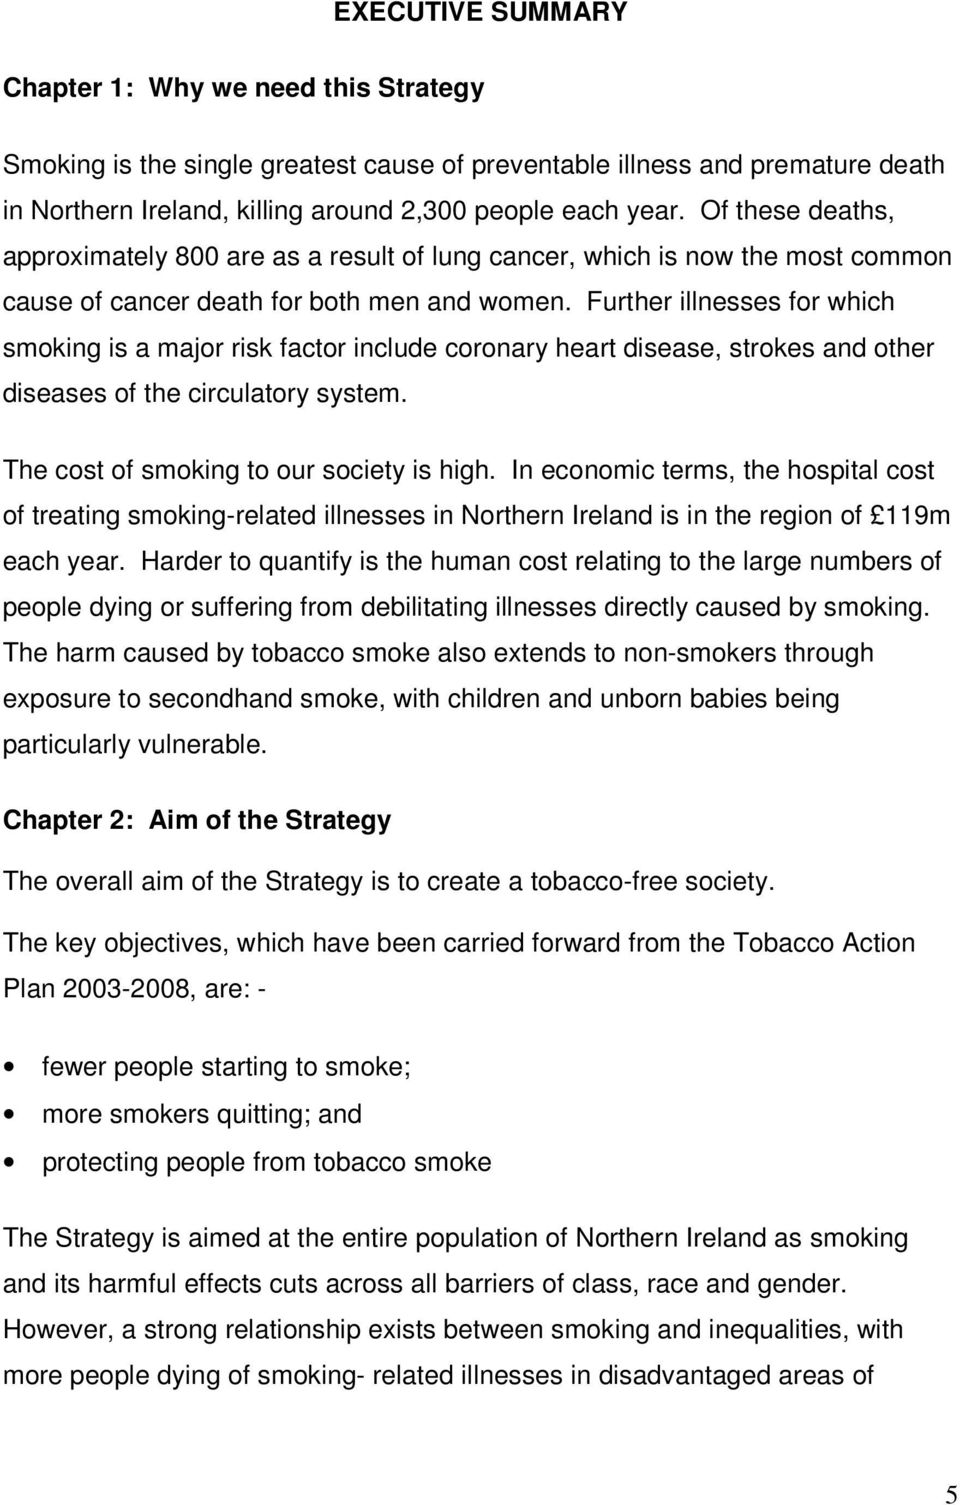 Further illnesses for which smoking is a major risk factor include coronary heart disease, strokes and other diseases of the circulatory system. The cost of smoking to our society is high.